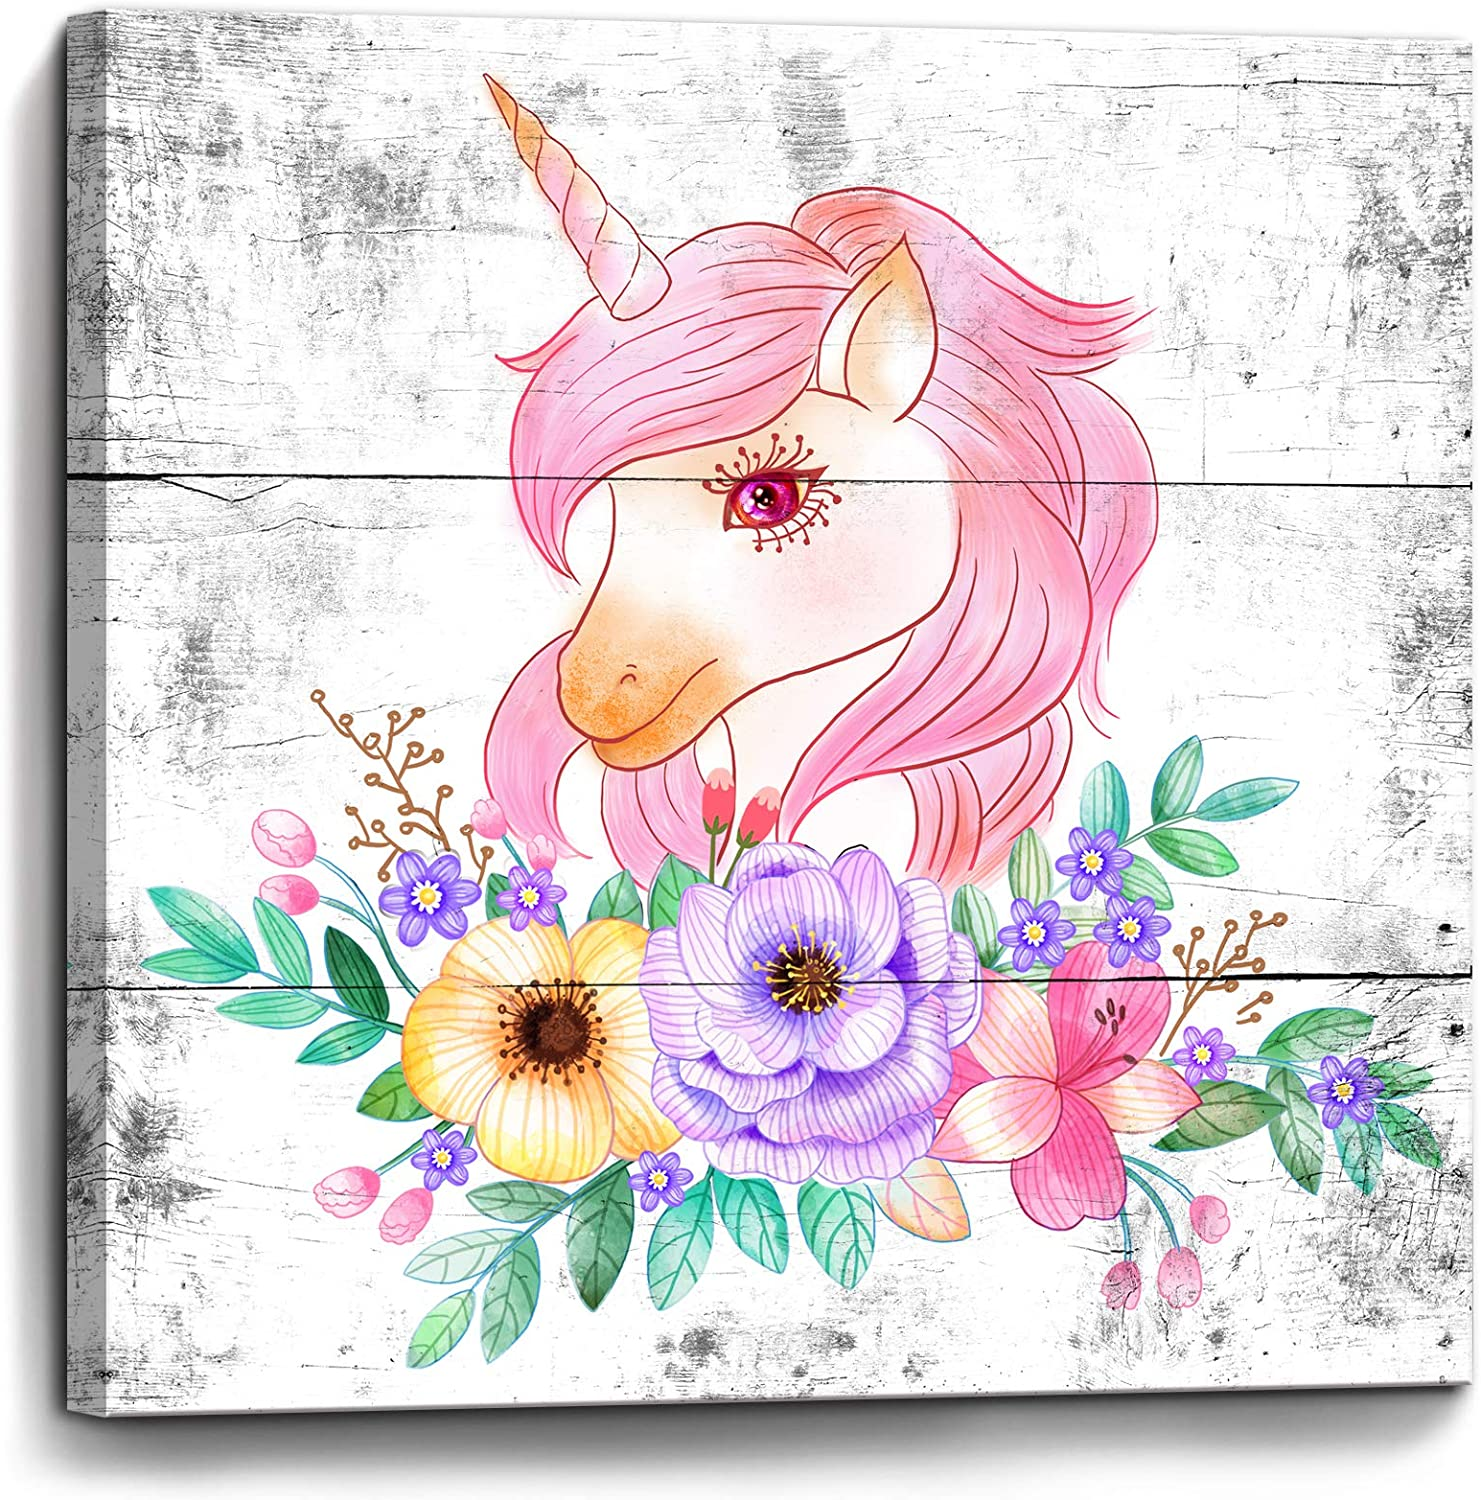 Colorful Unicorn Wall Decor Modern Bathroom Decor Wall Art Framed Canvas Prints Size 14x14 Ready to Hang for Girls Room Bedroom Pink Unicorn Flowers Pictures Artwork for Kids Room Wall Decorations